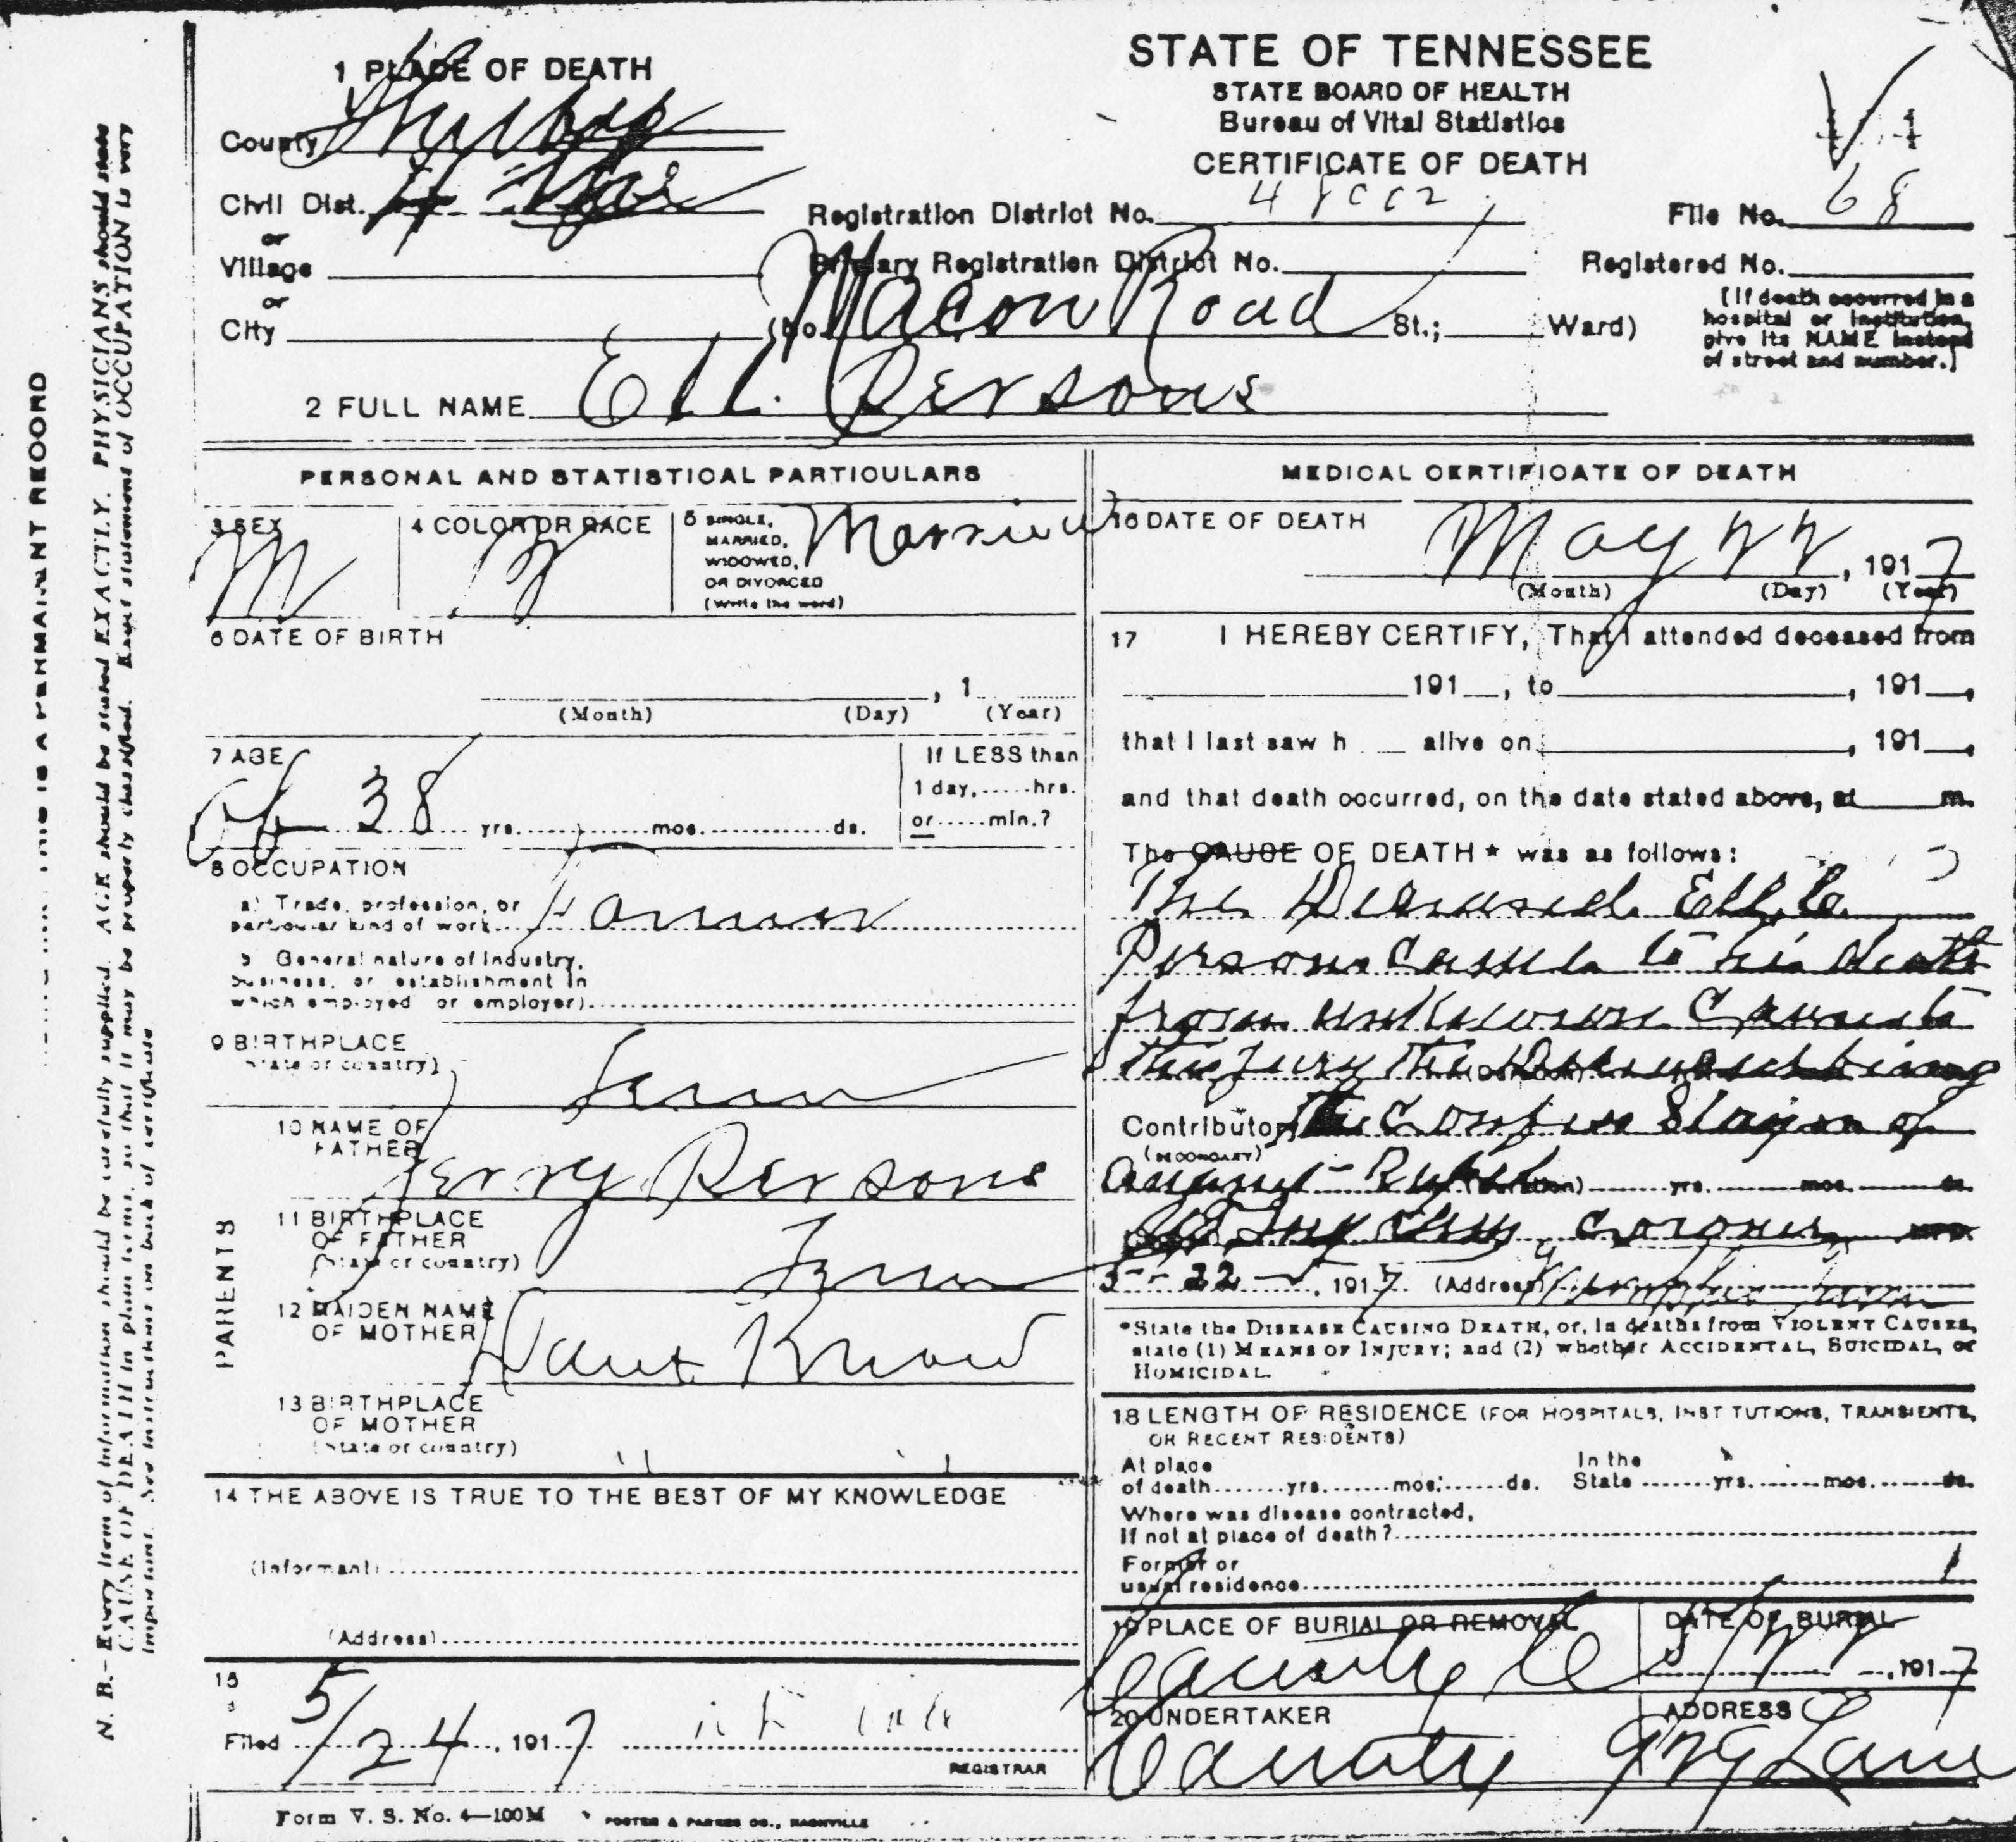 Ell Persons Death Certificate, 5/24/1917